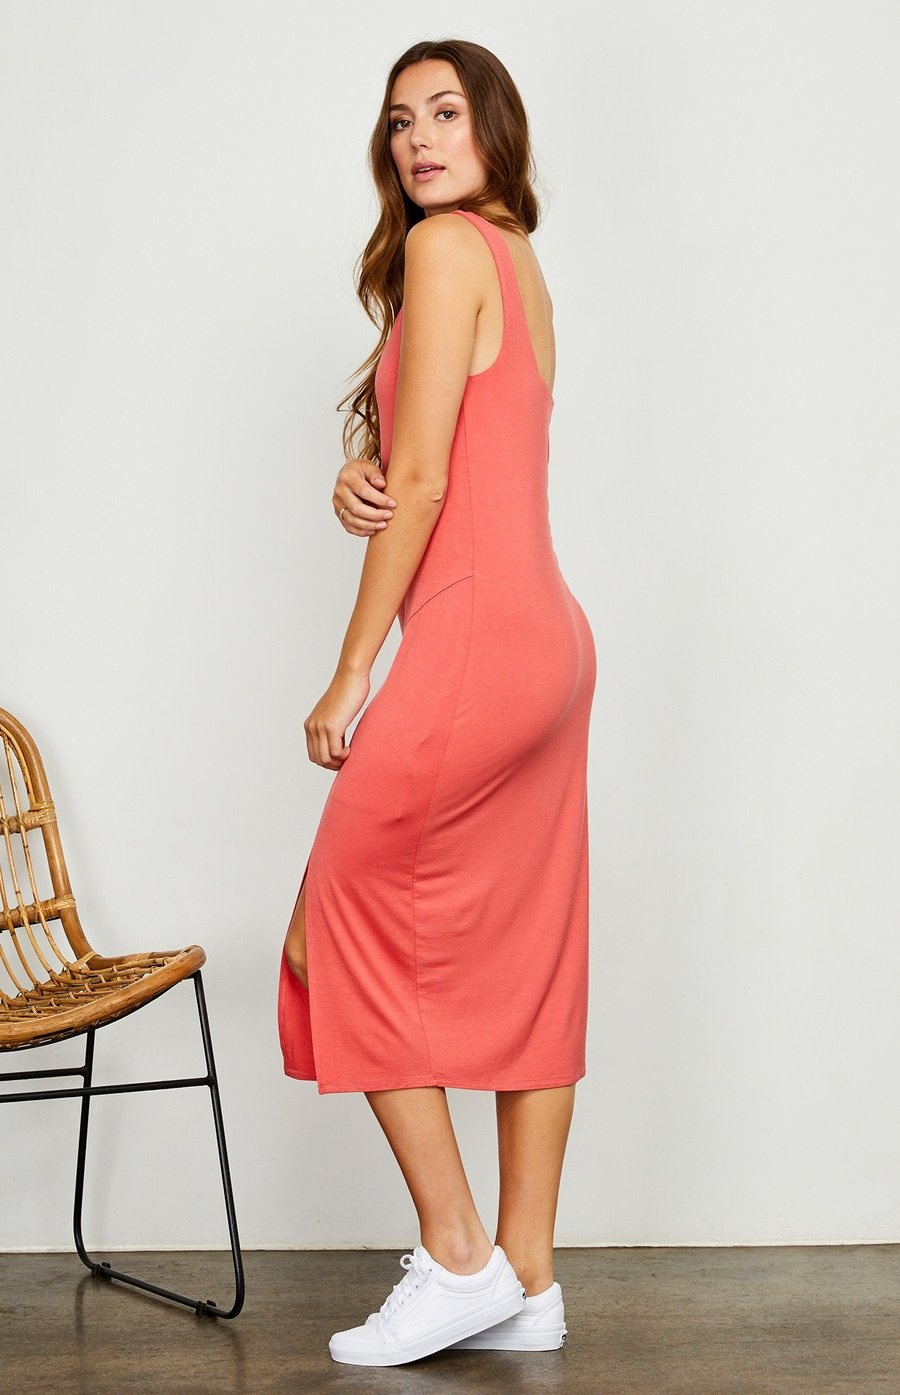 Gentlefawn Avril Dress - Coral